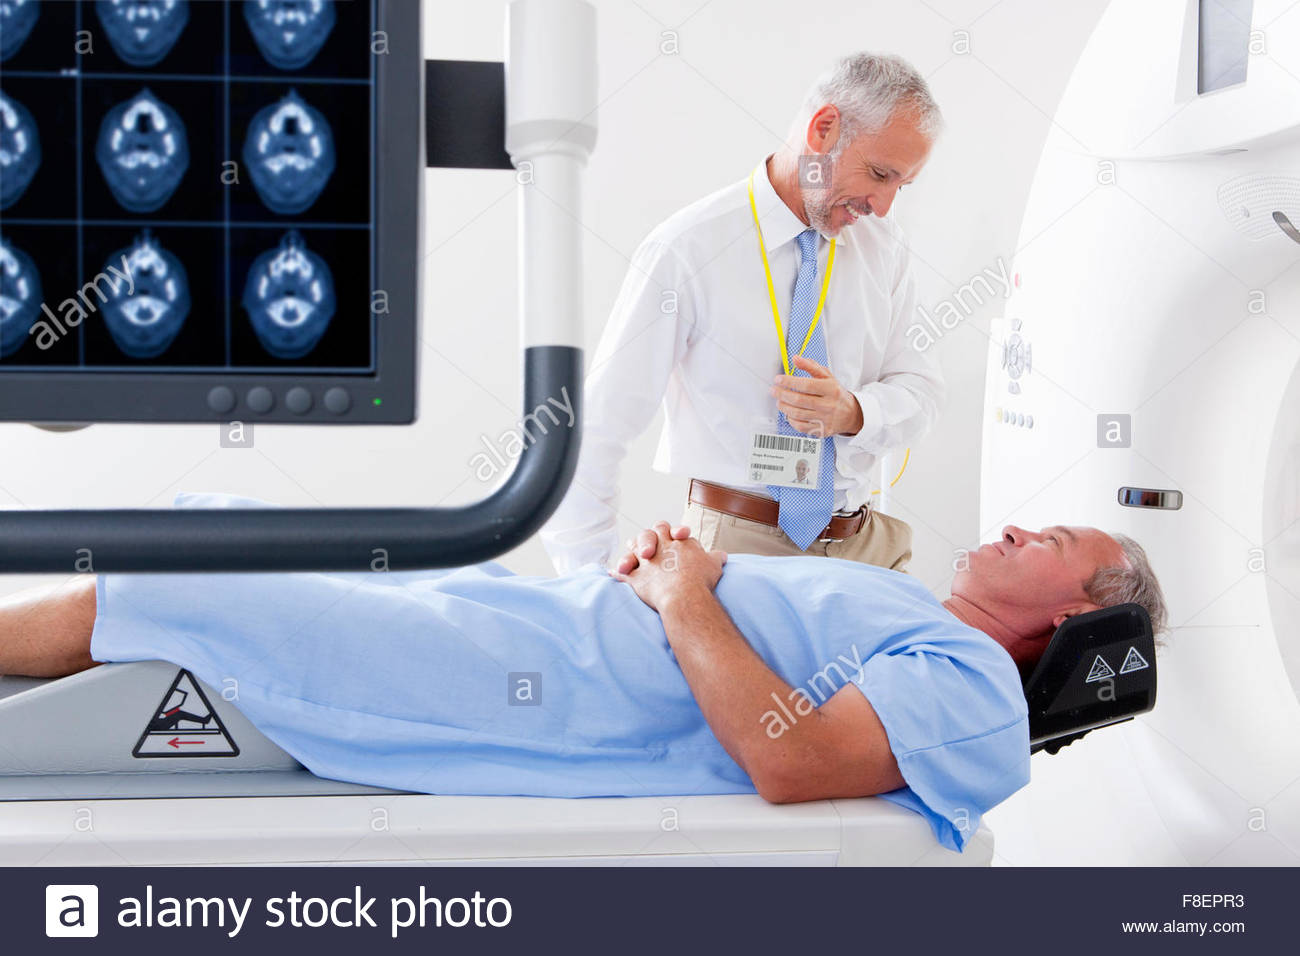 Doctor and patient at CT scanner behind digital brain scan in hospital - Stock Image